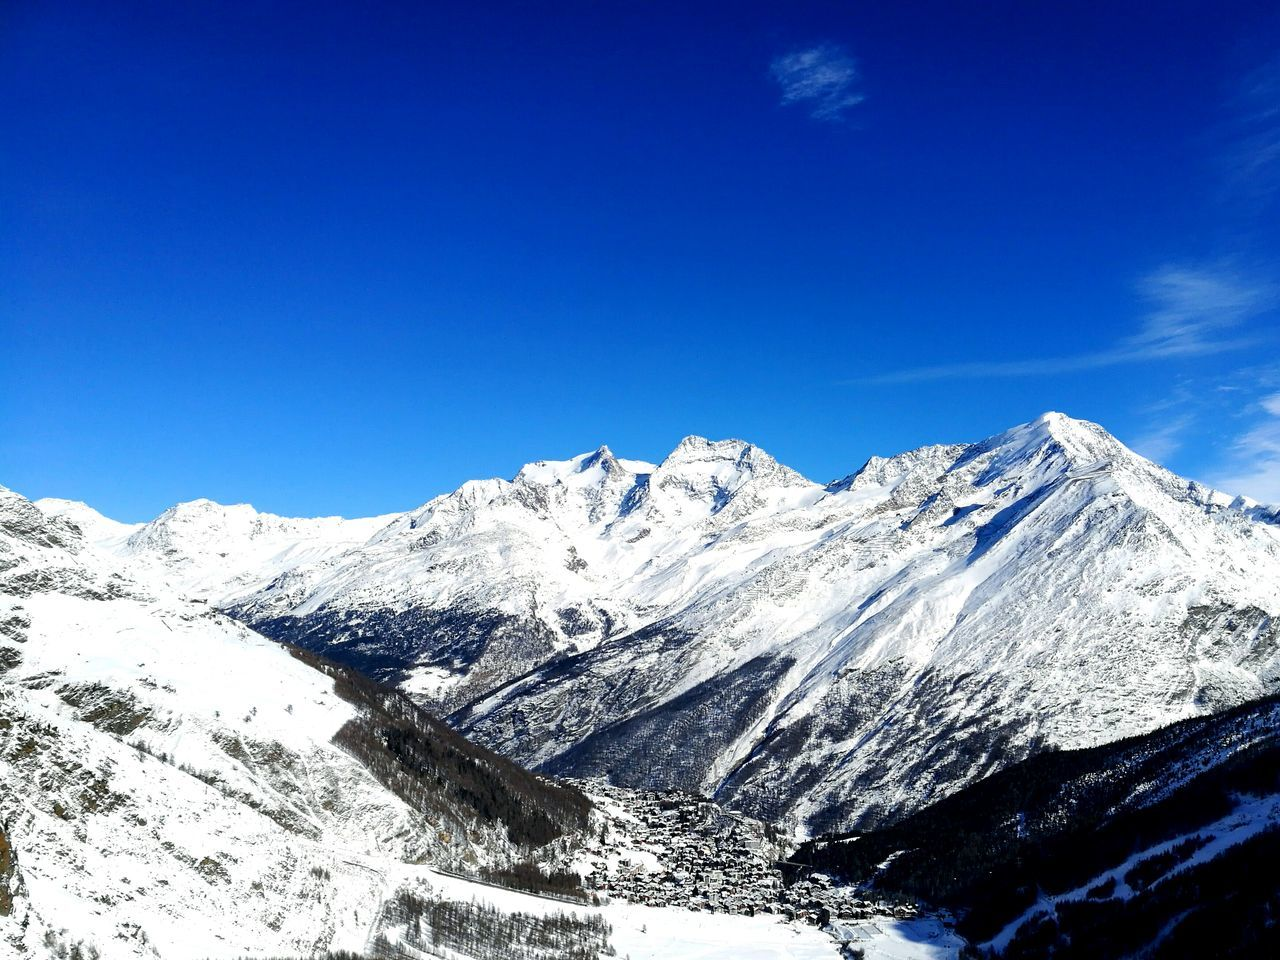 Snow Mountain Snowcapped Mountain Landscape Blue Mountain Range Winter Scenics Clear Sky Beauty In Nature Outdoors Sky Day Mountain Peak Cold Temperature Nature No People Pictureoftheday 3XSPUnity Beauty In Nature Winter Snowboard Saasfee HuaweiP9 Follow4follow